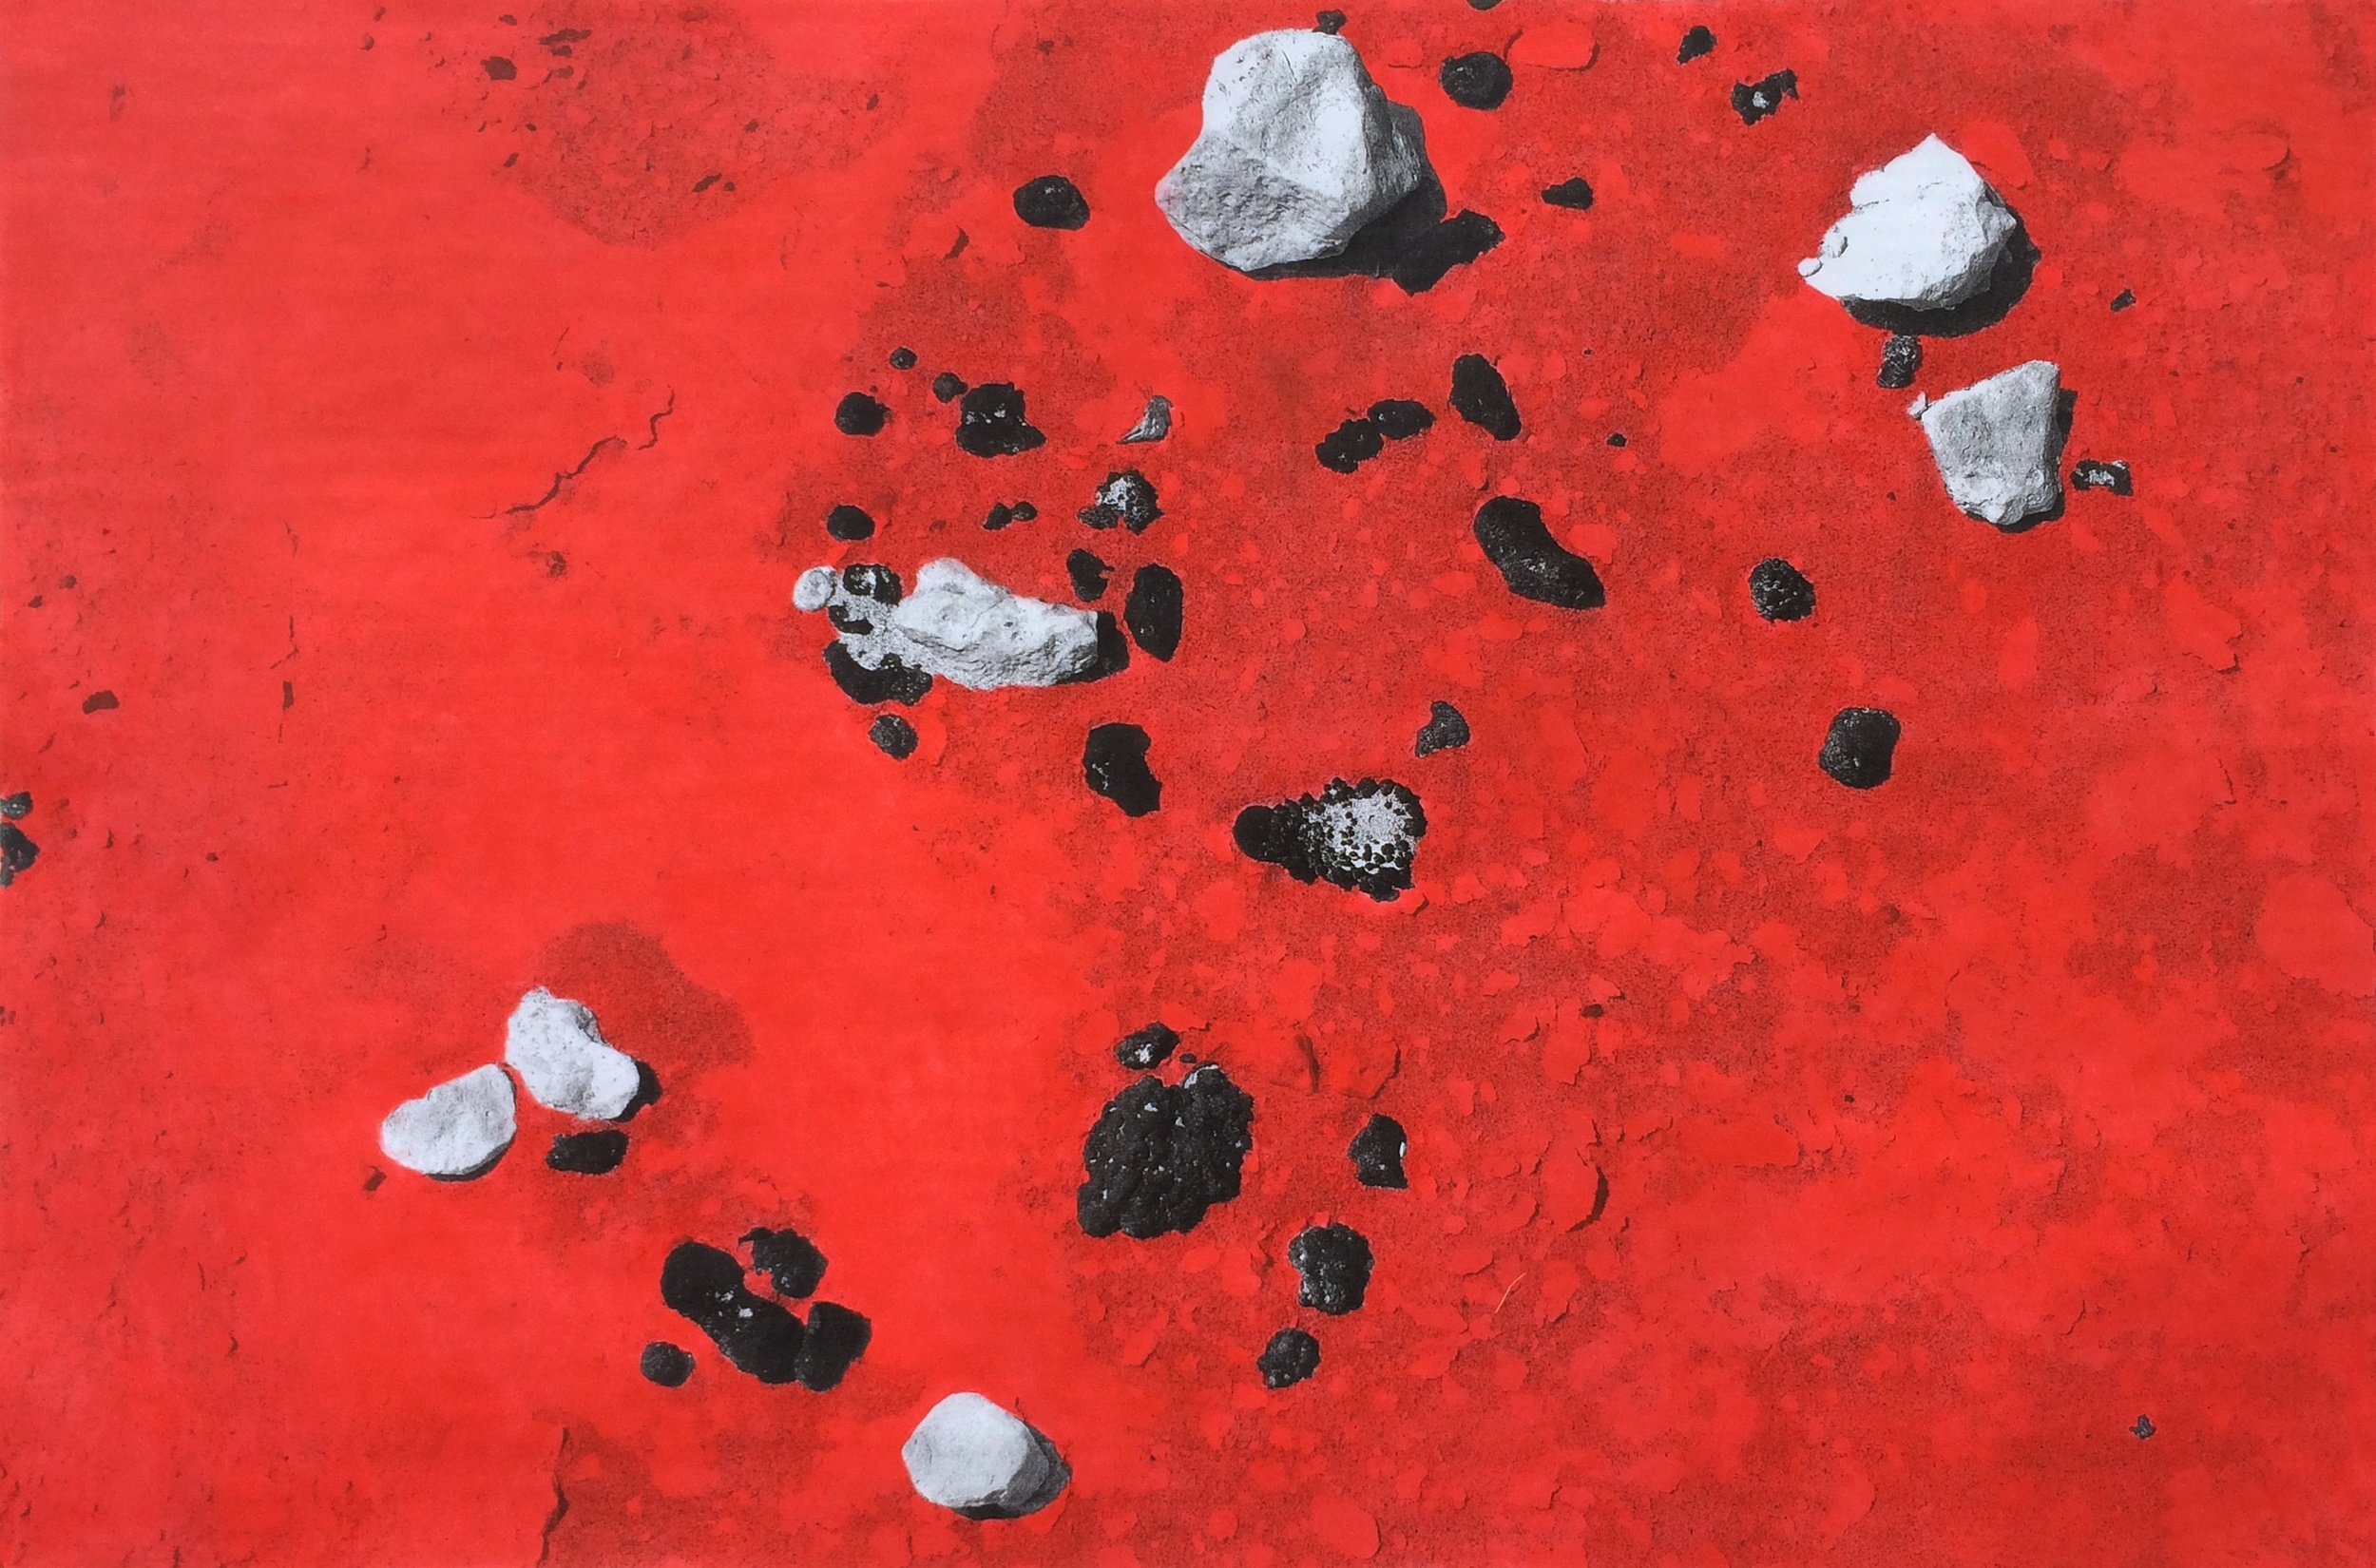 Red Desert, 2016  pastel on laser toner print mounted on aluminum dibond, 34 x 51 inches